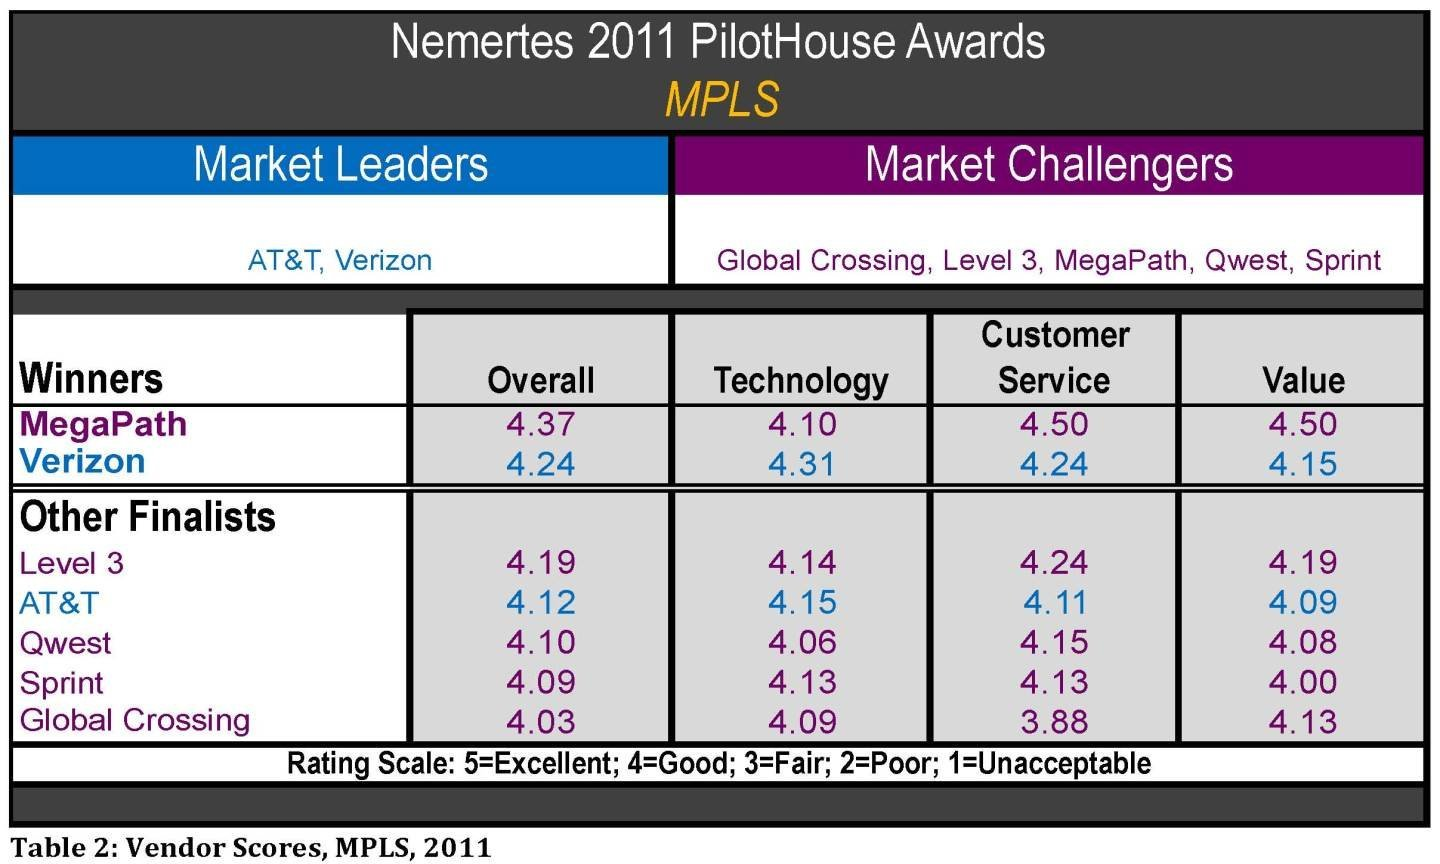 Nemertes 2011 MPLS vendor scores